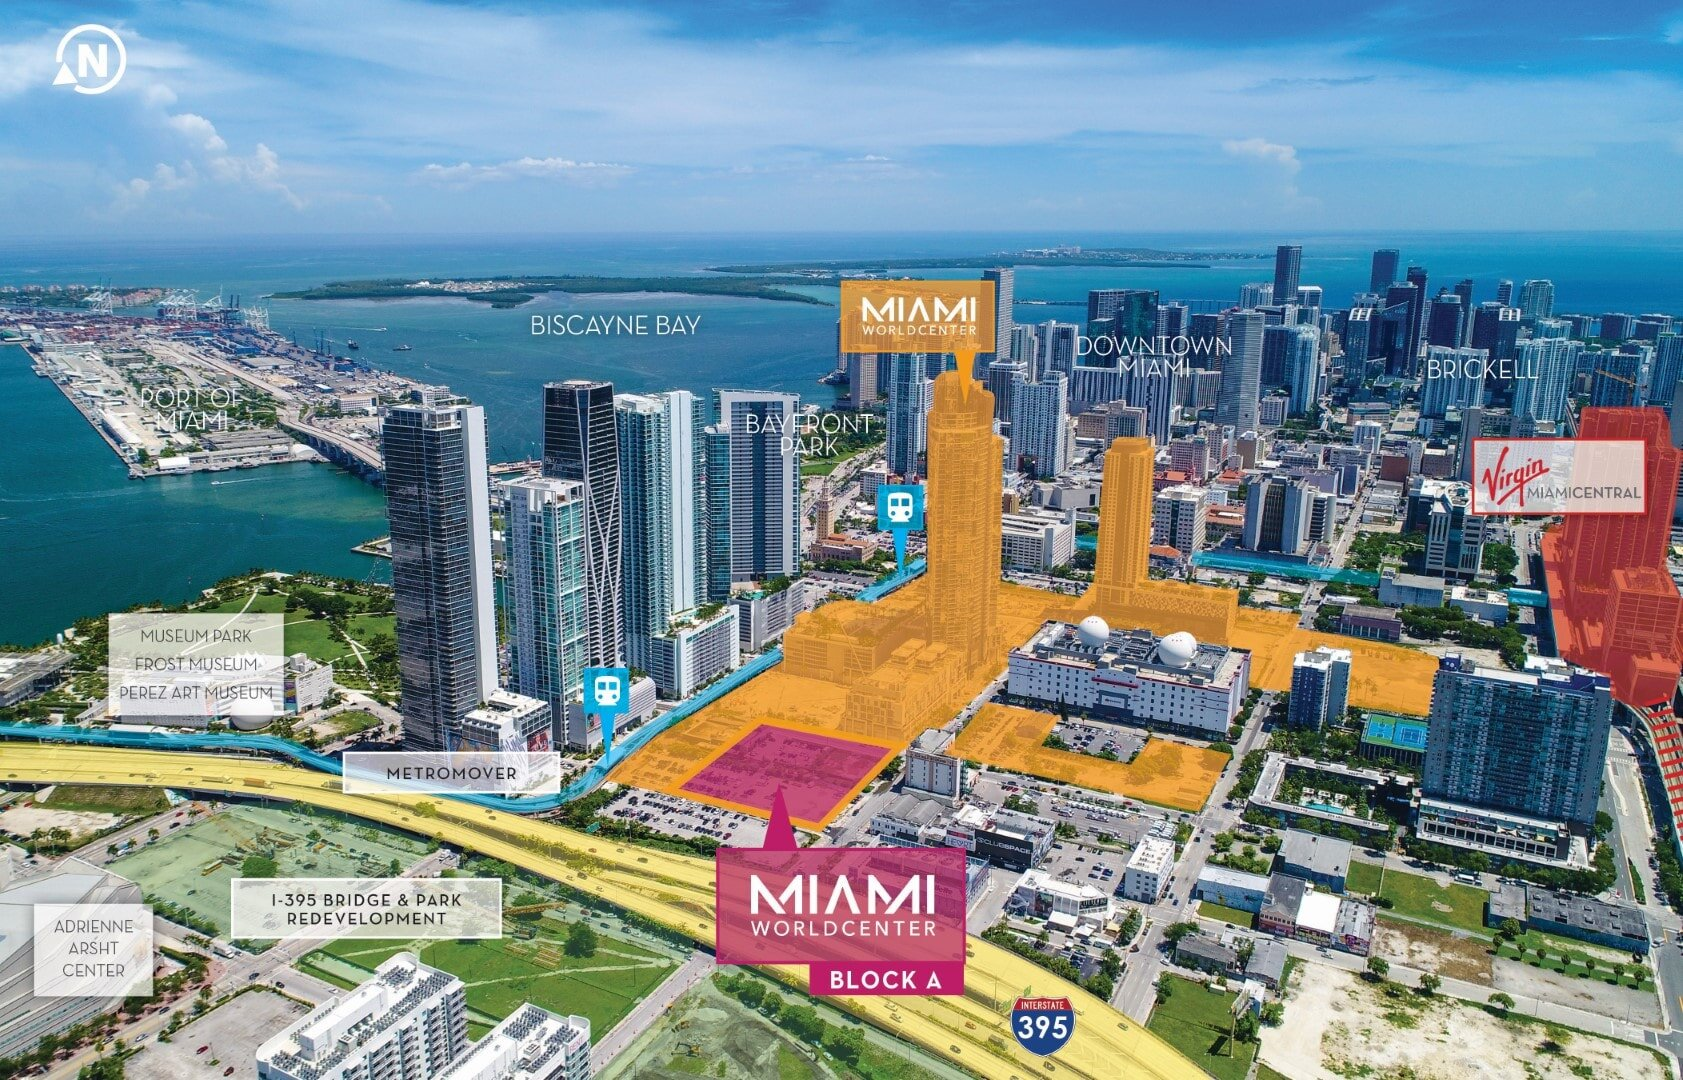 Last Remaining 2.18 Acre Parcel At Miami Worldcenter Listed For Sale